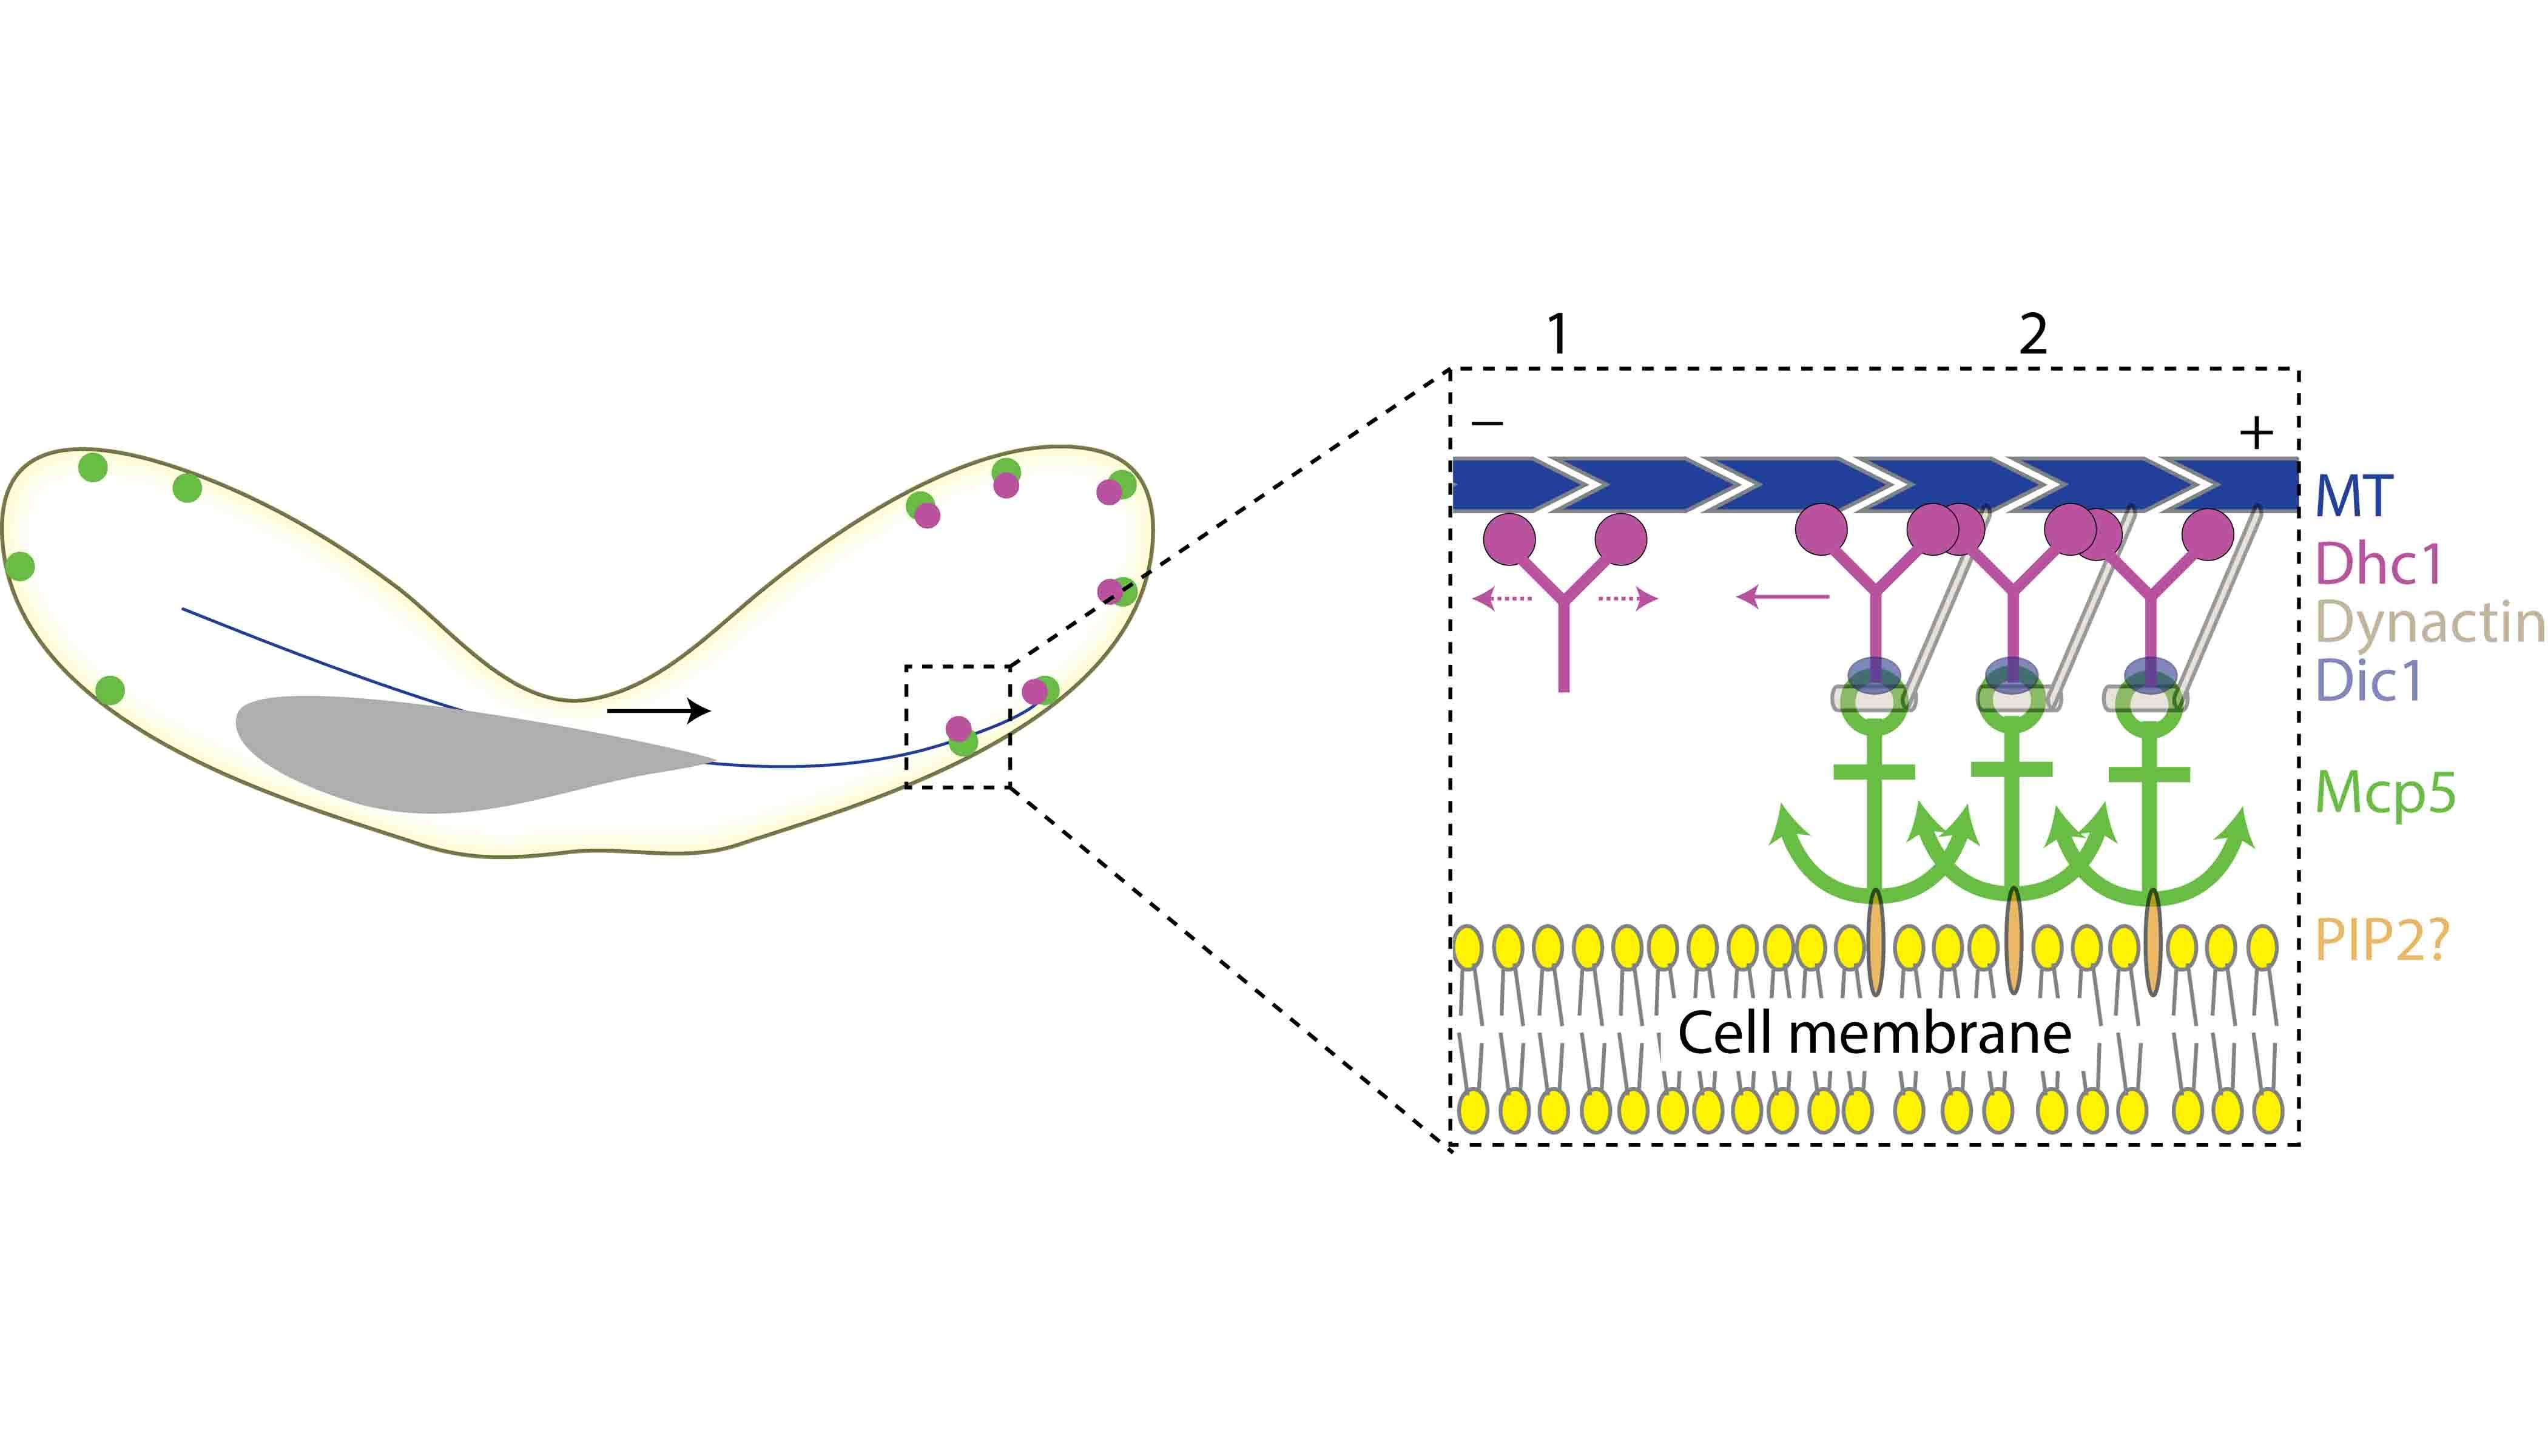 Illustration depicting binding of dynein to the cell membrane via Mcp5 (green) and PIP2 (grey)